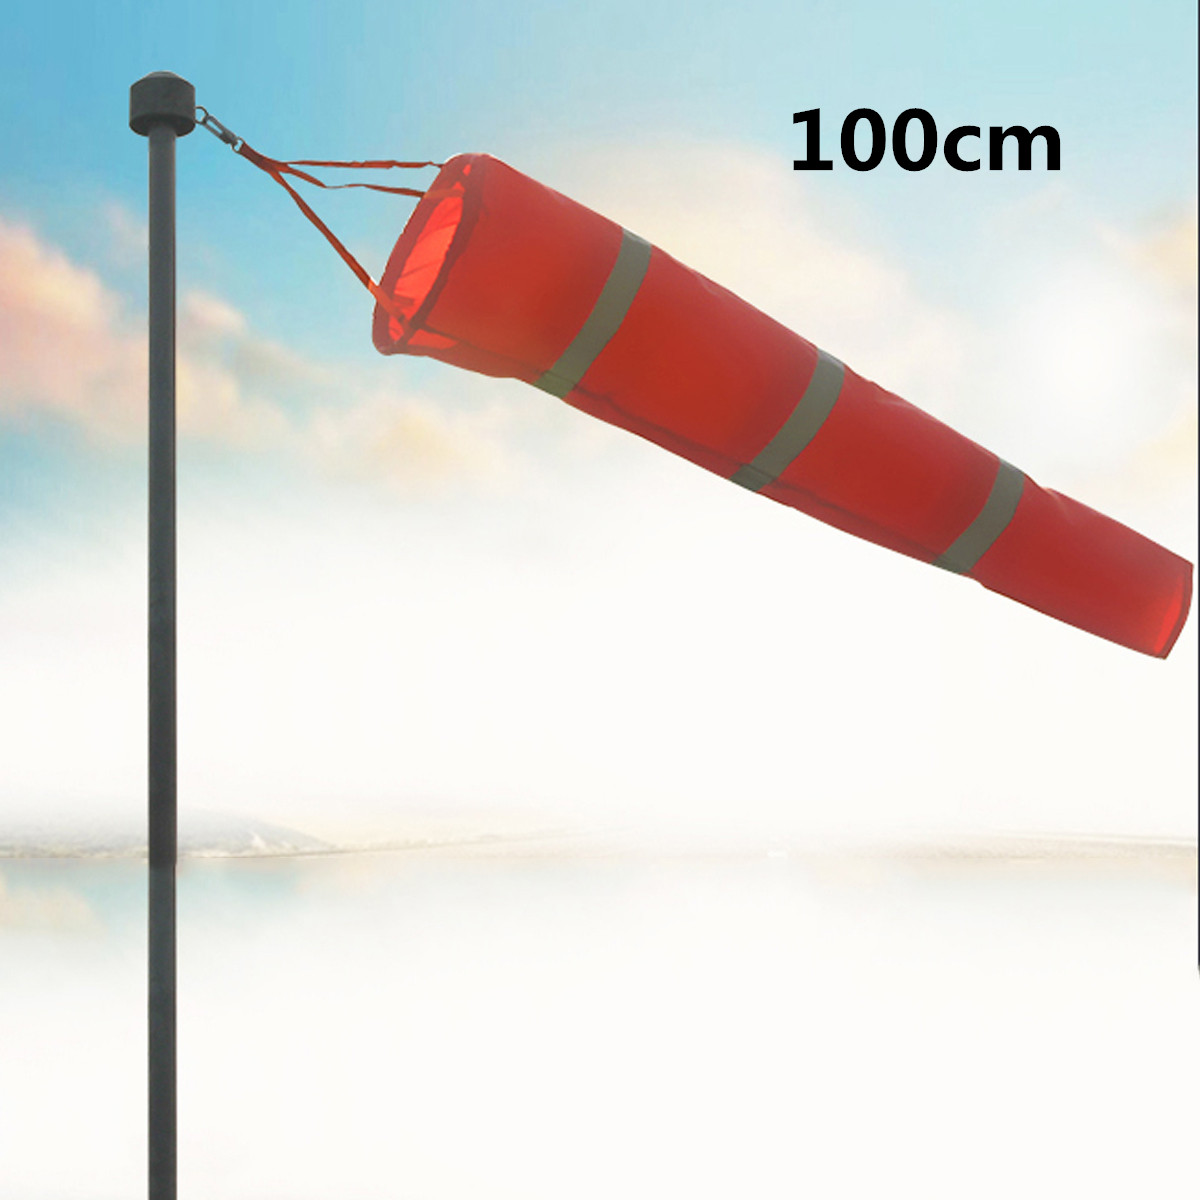 LBLA 100cm Aviation Windsock Rip-stop Wind Measurement Sock Bag Reflective Belt Wind Monitoring Outdoor Toy IndicatorLBLA 100cm Aviation Windsock Rip-stop Wind Measurement Sock Bag Reflective Belt Wind Monitoring Outdoor Toy Indicator